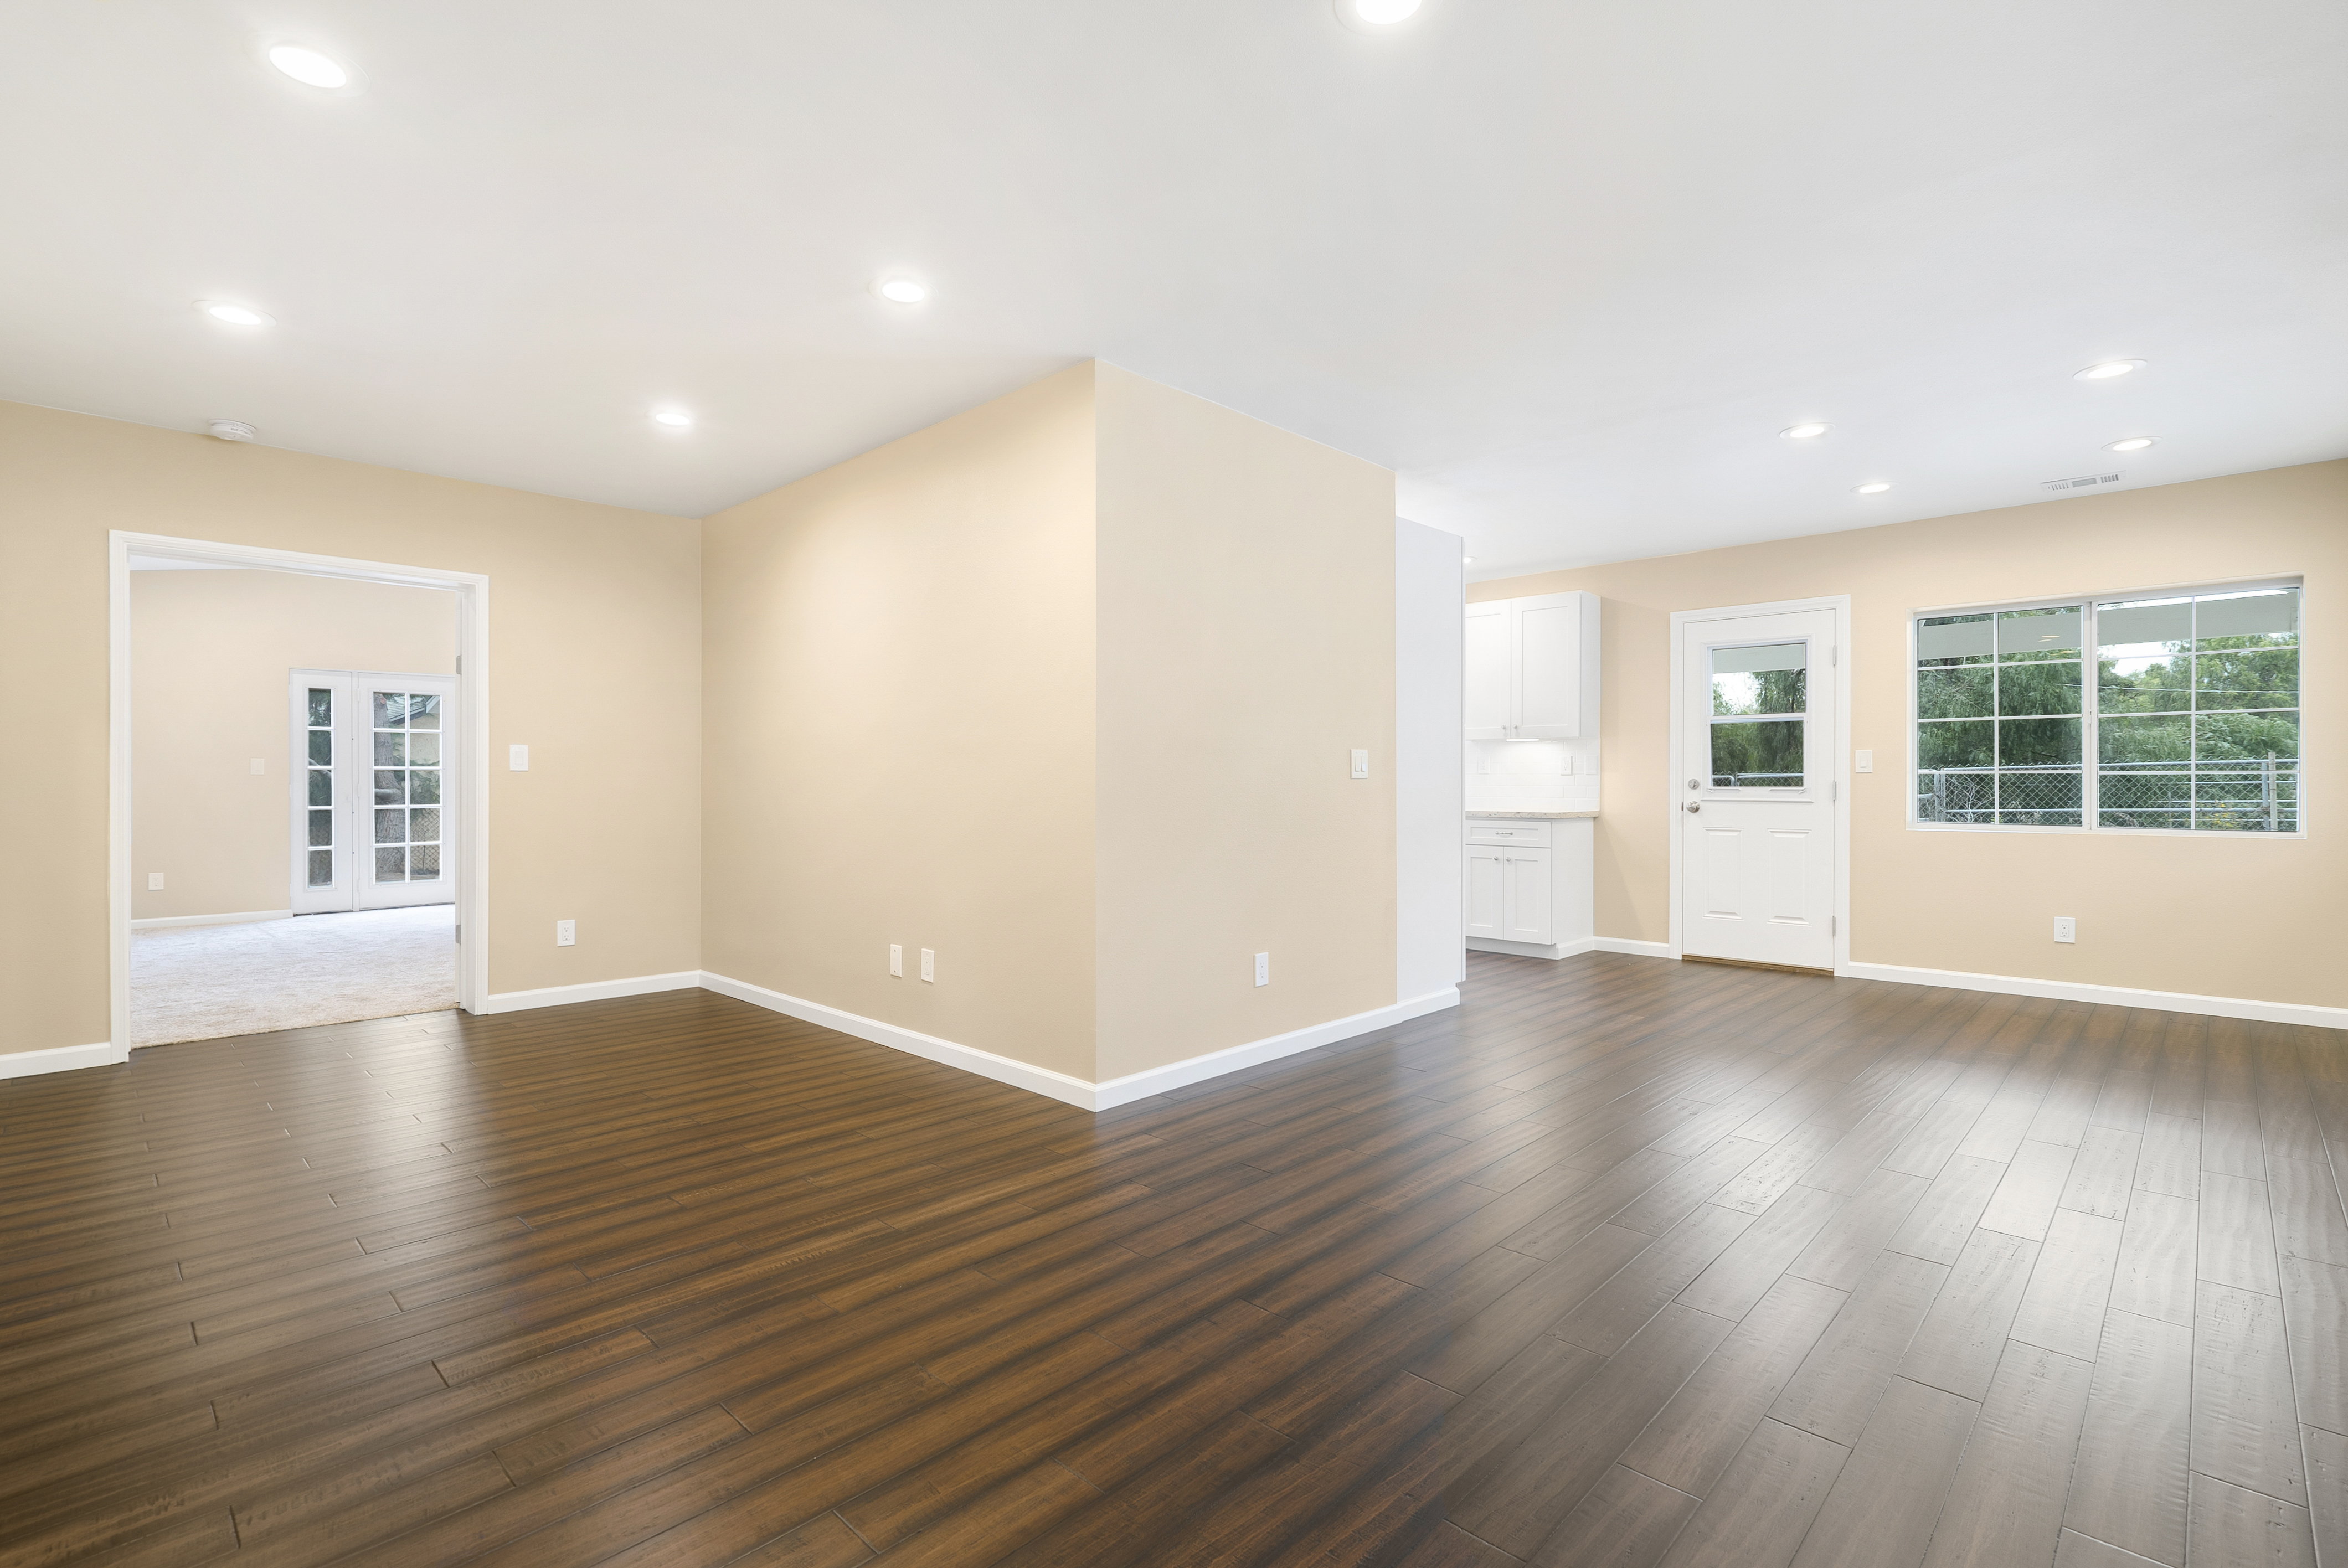 View from corner of living room with view of double door entry to master suite on the left, and the dining room and kitchen to the right. All new wood flooring, paint, doors, and recessed lighting.